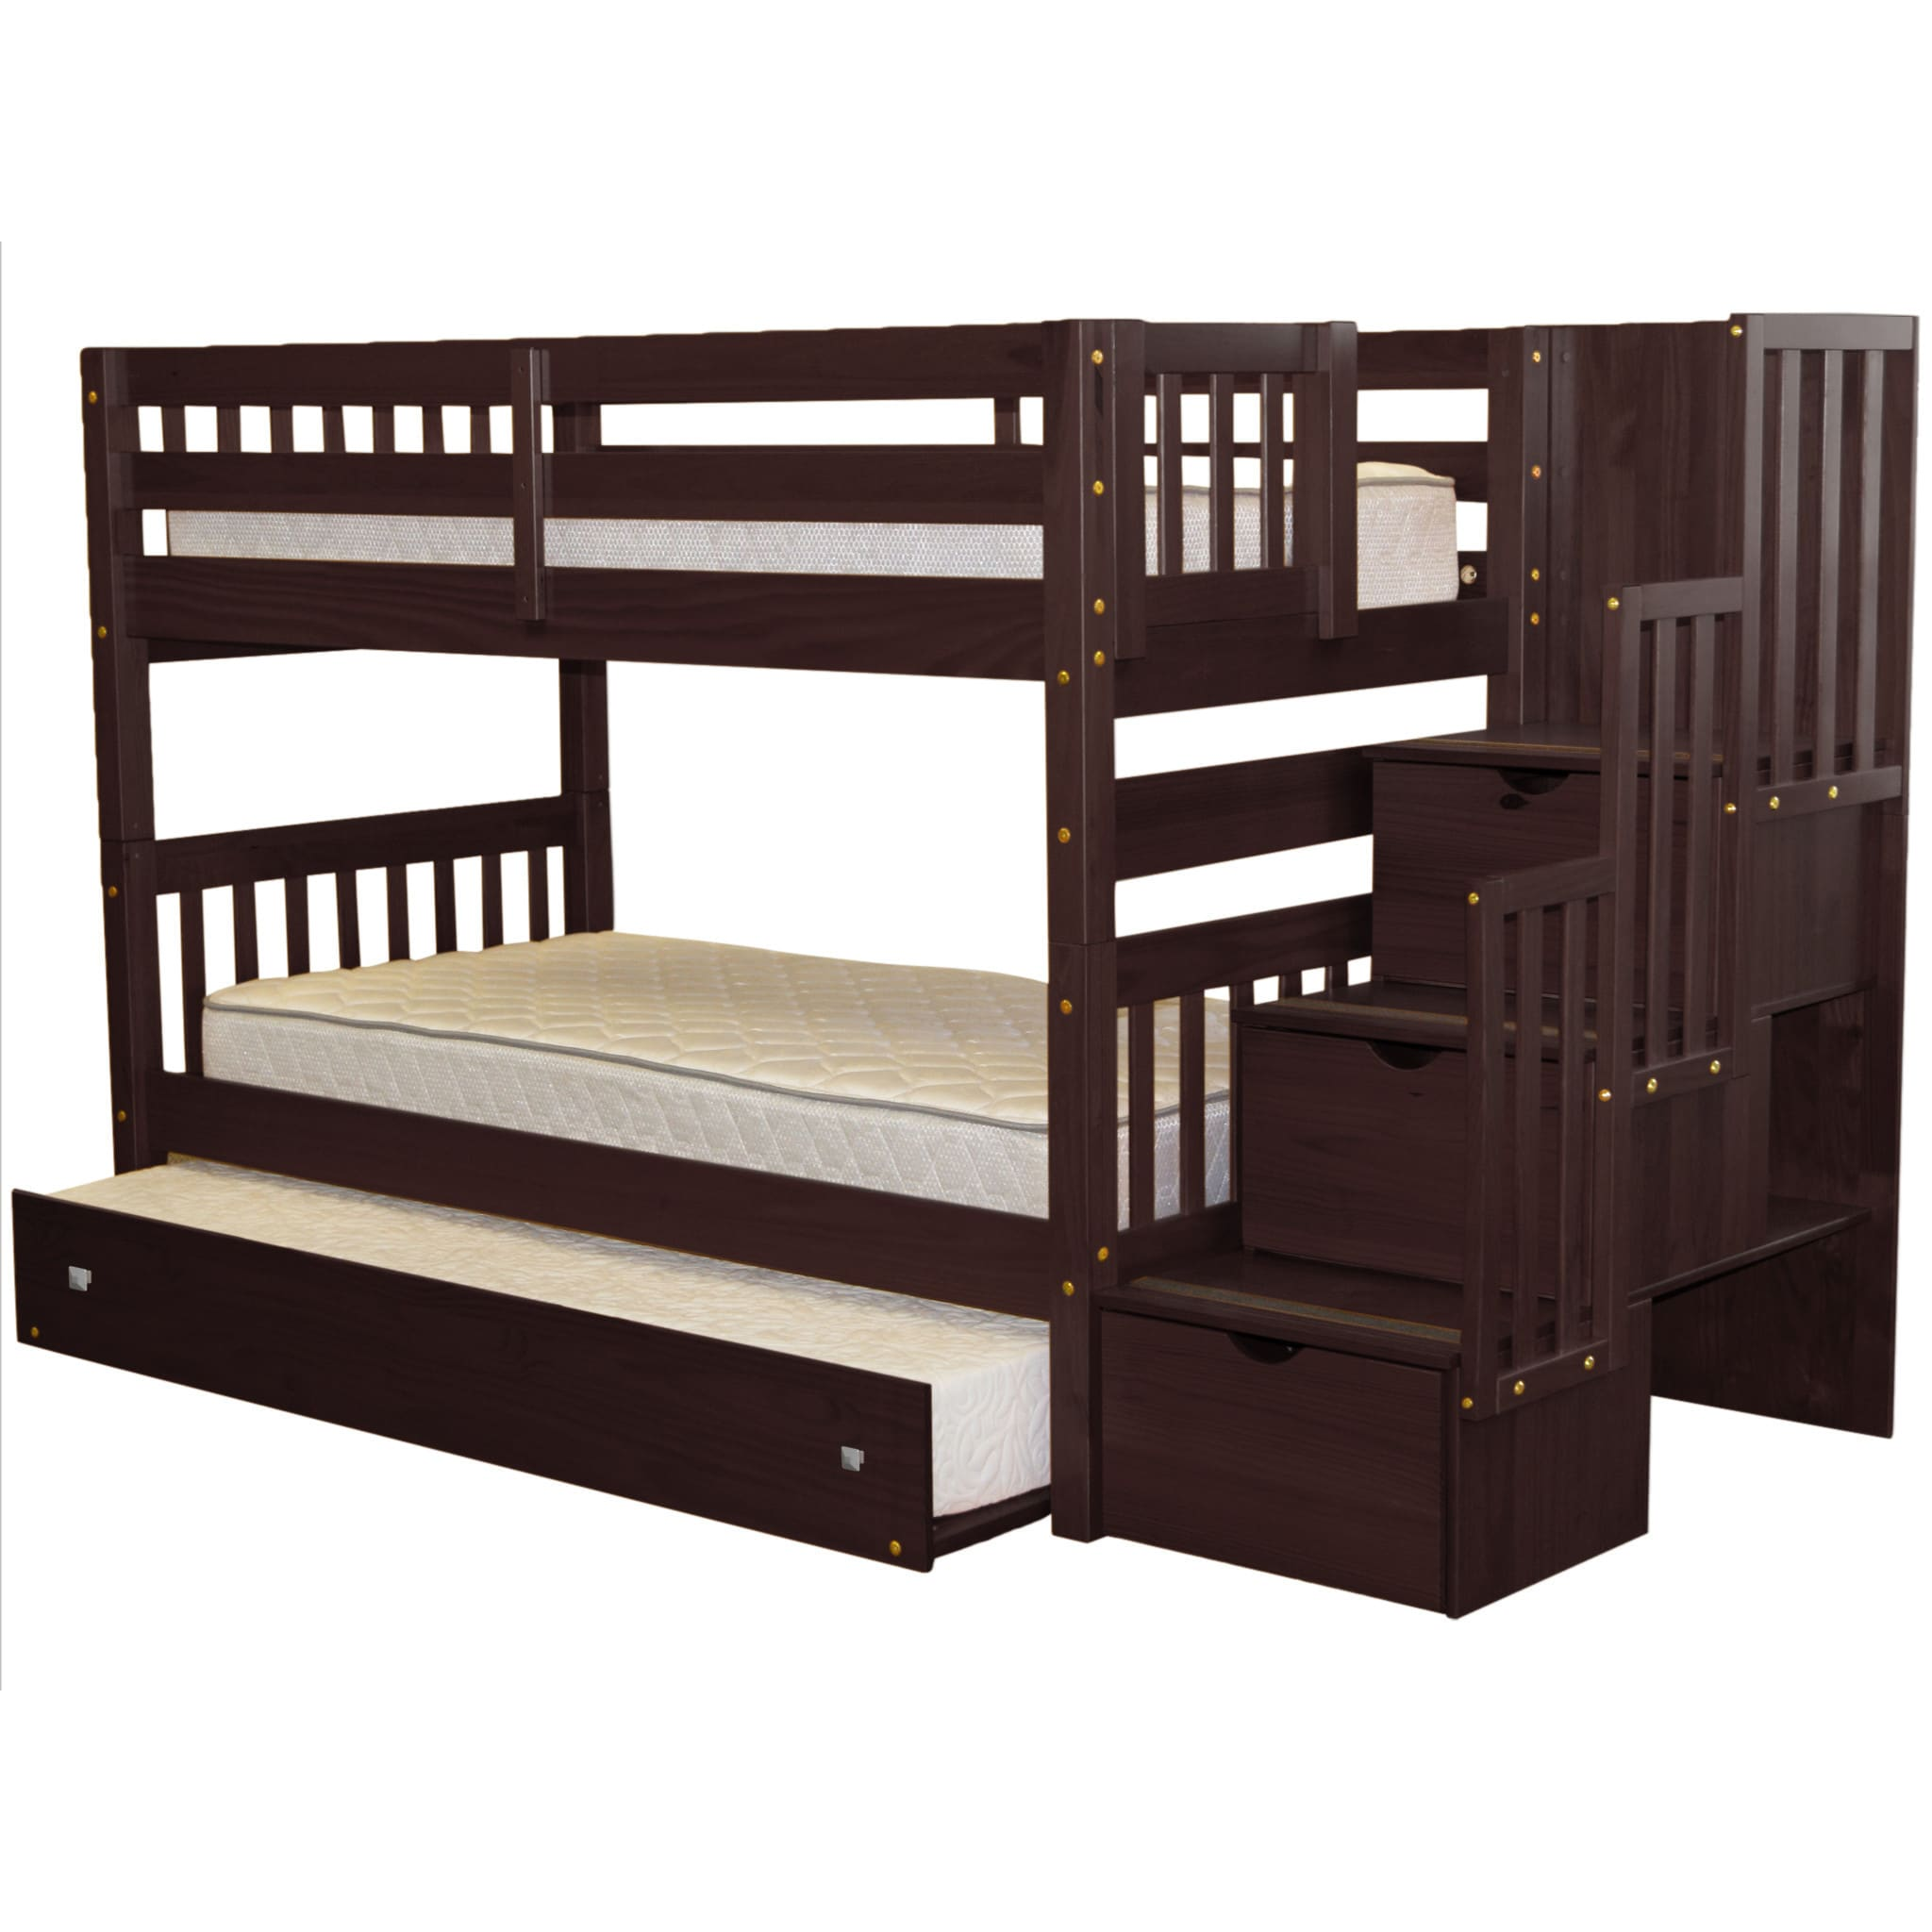 Quality Bunk Beds On Walmart Marketplace Marketplace Pulse